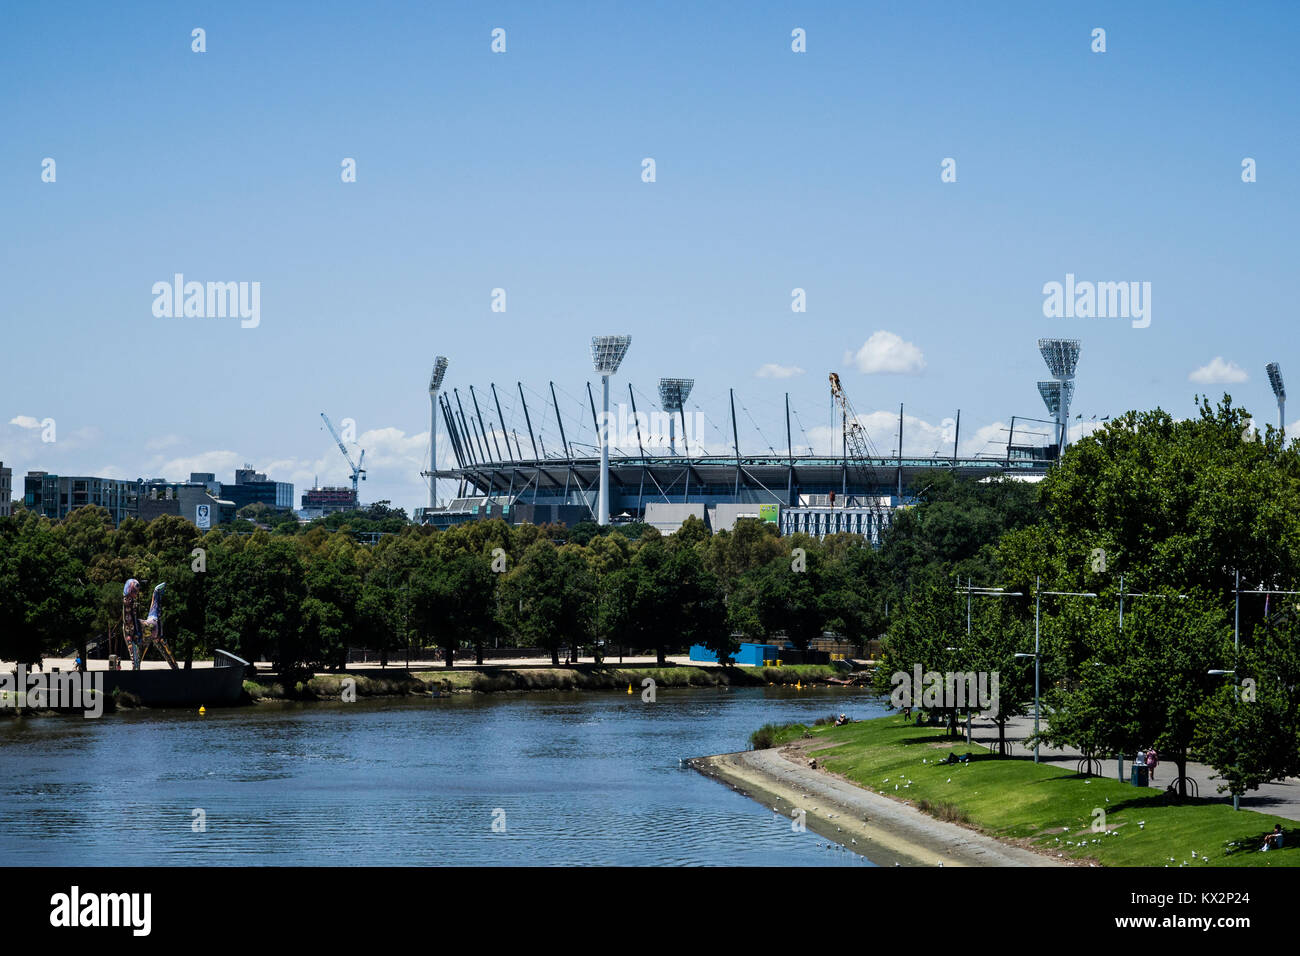 The Yarra river and the Melbourne Cricket Ground (MCG), Melbourne, Victoria, Australia. The Melbourne Cricket Ground - Stock Image